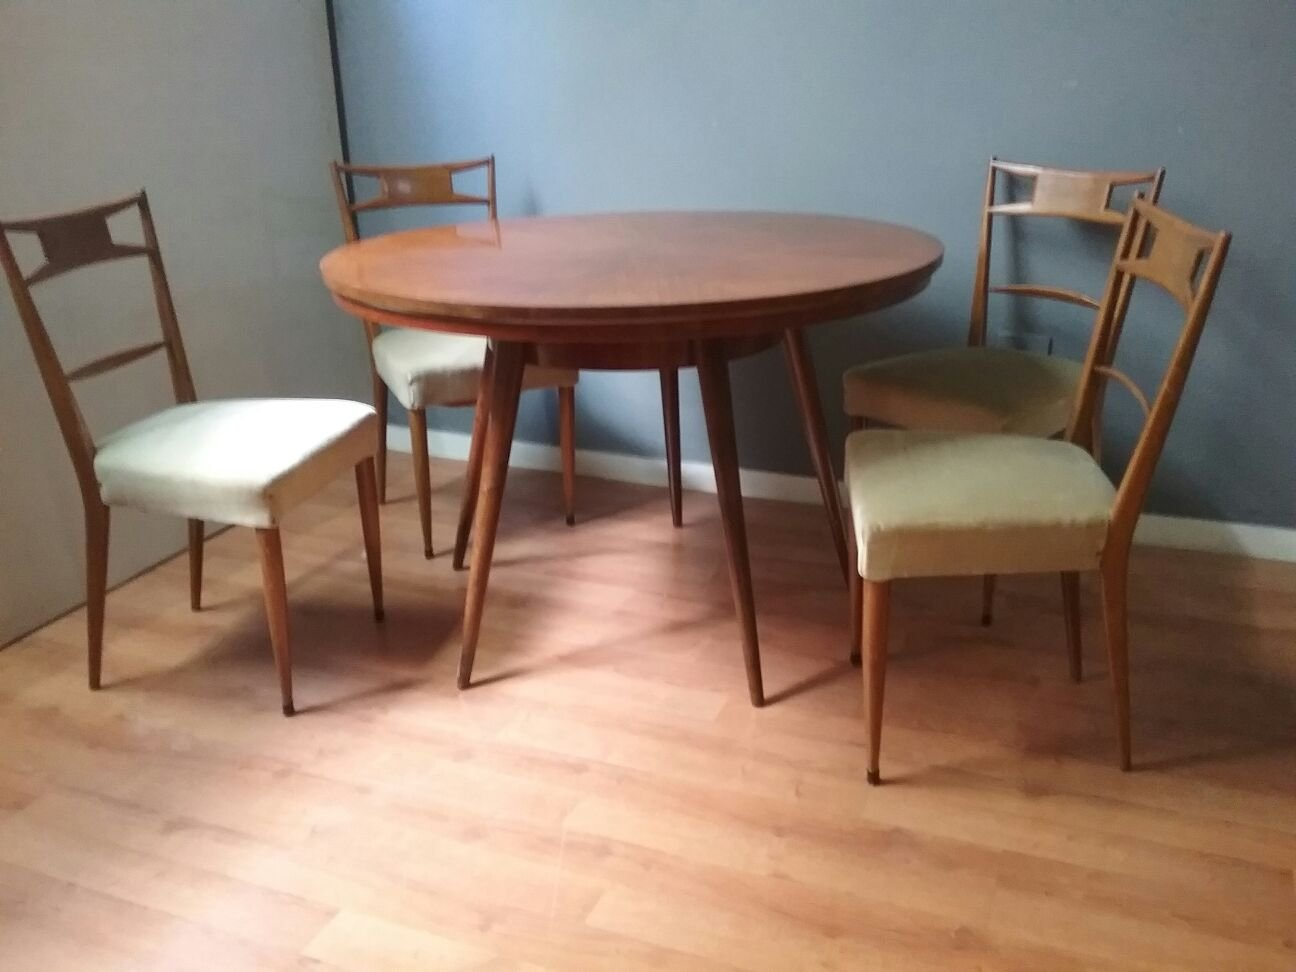 antique dining room chairs. Vintage Dining Table \u0026 Chairs, 1950s Antique Room Chairs